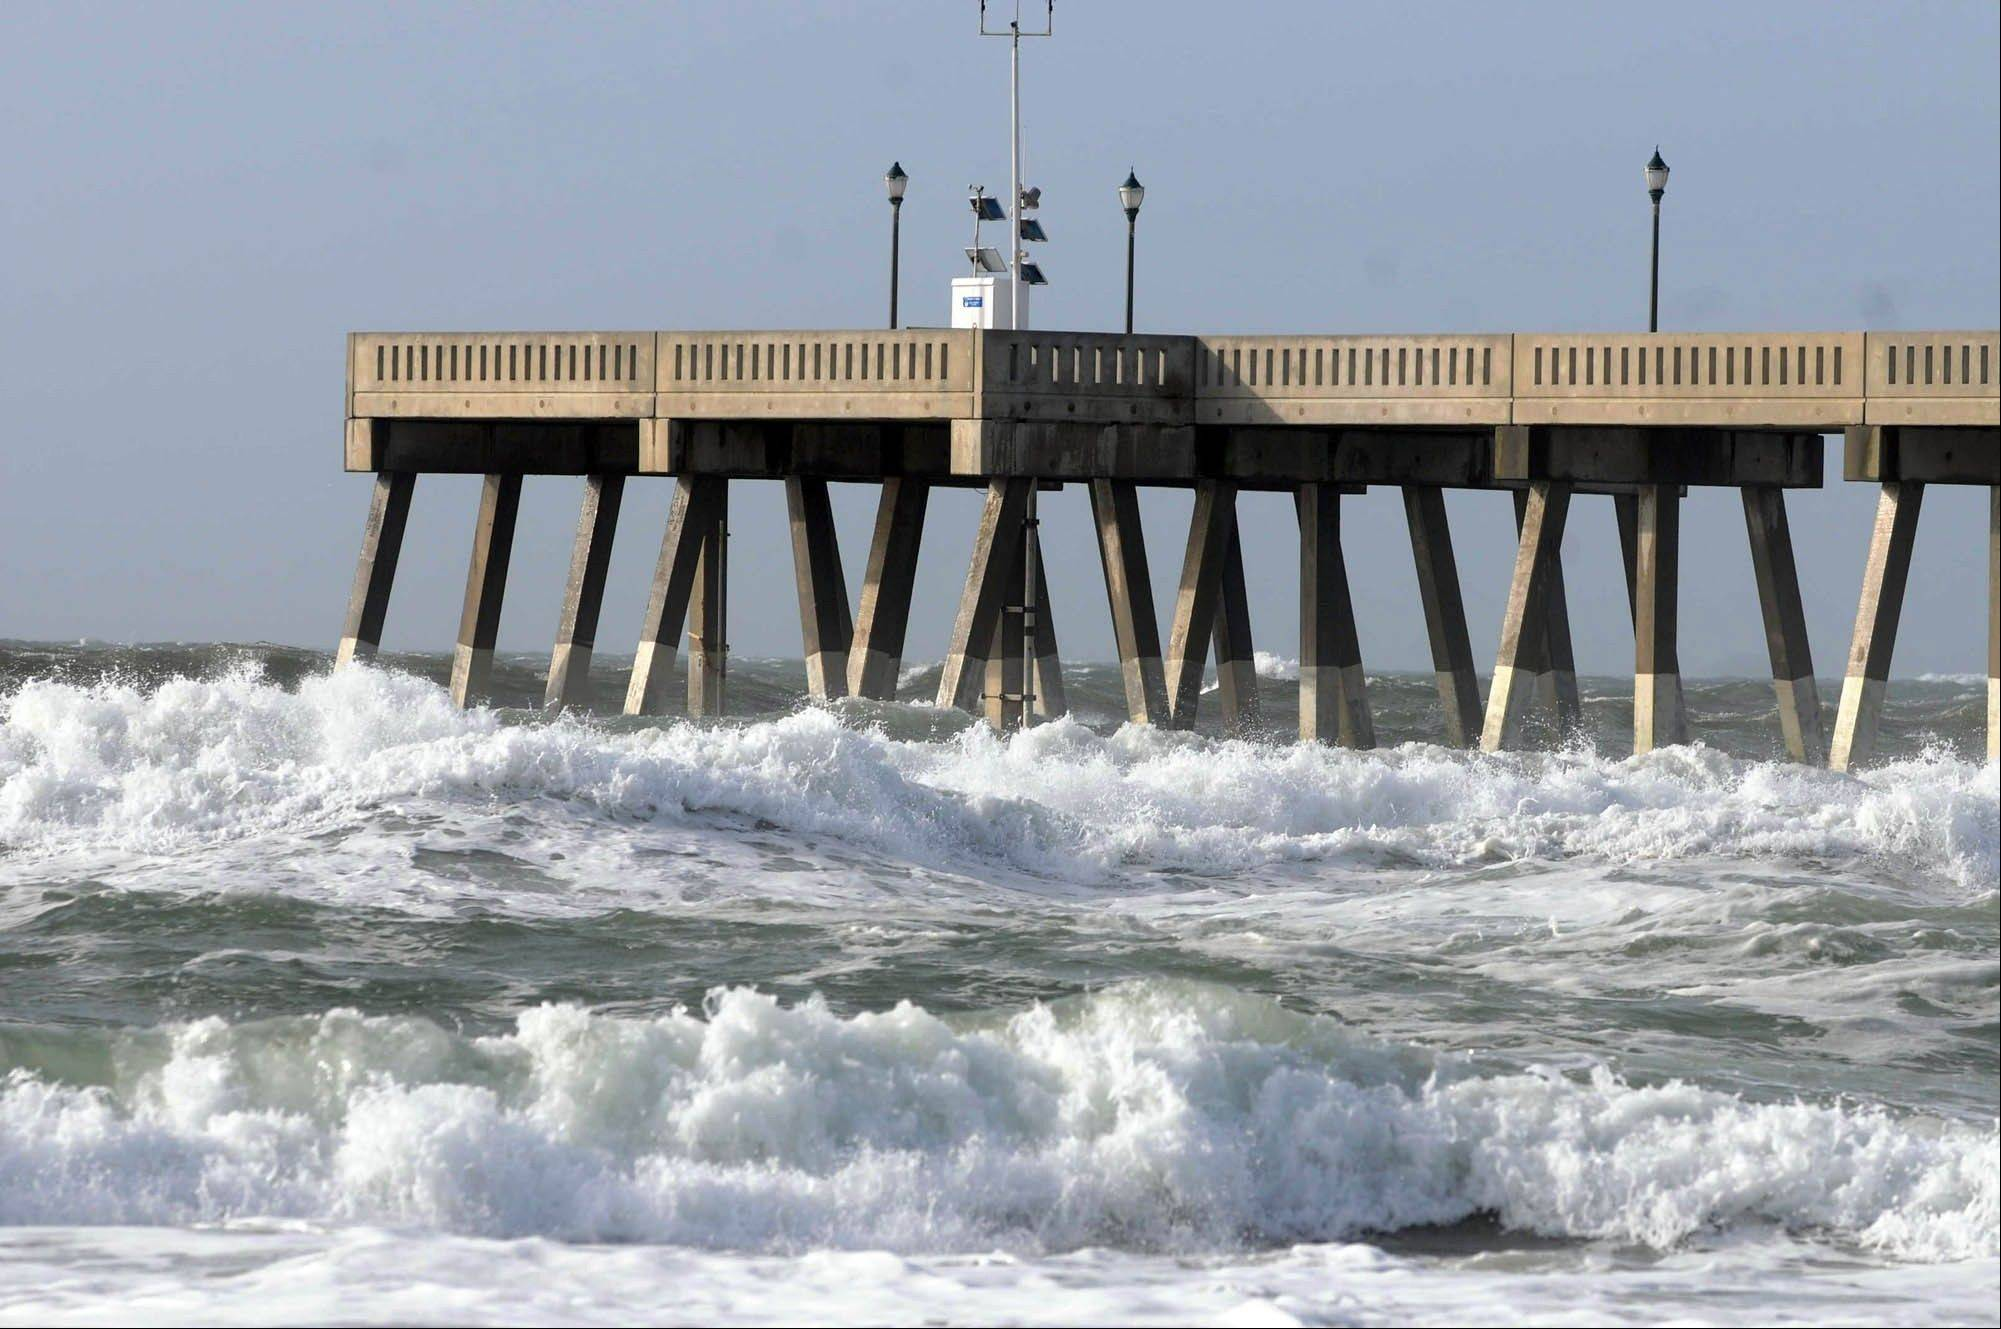 Waves crash against the pier Friday as Tropical Storm Andrea moves in on Wrightsville Beach in Wilmington, N.C.